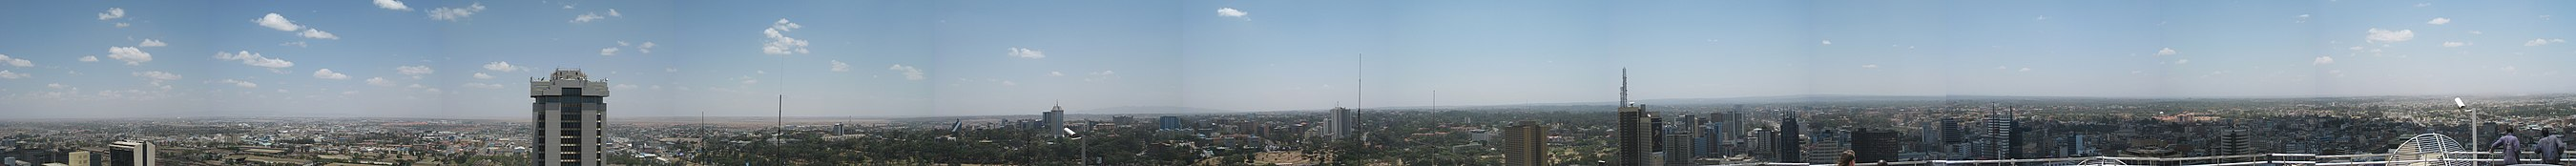 360-degree Nairobi panorama